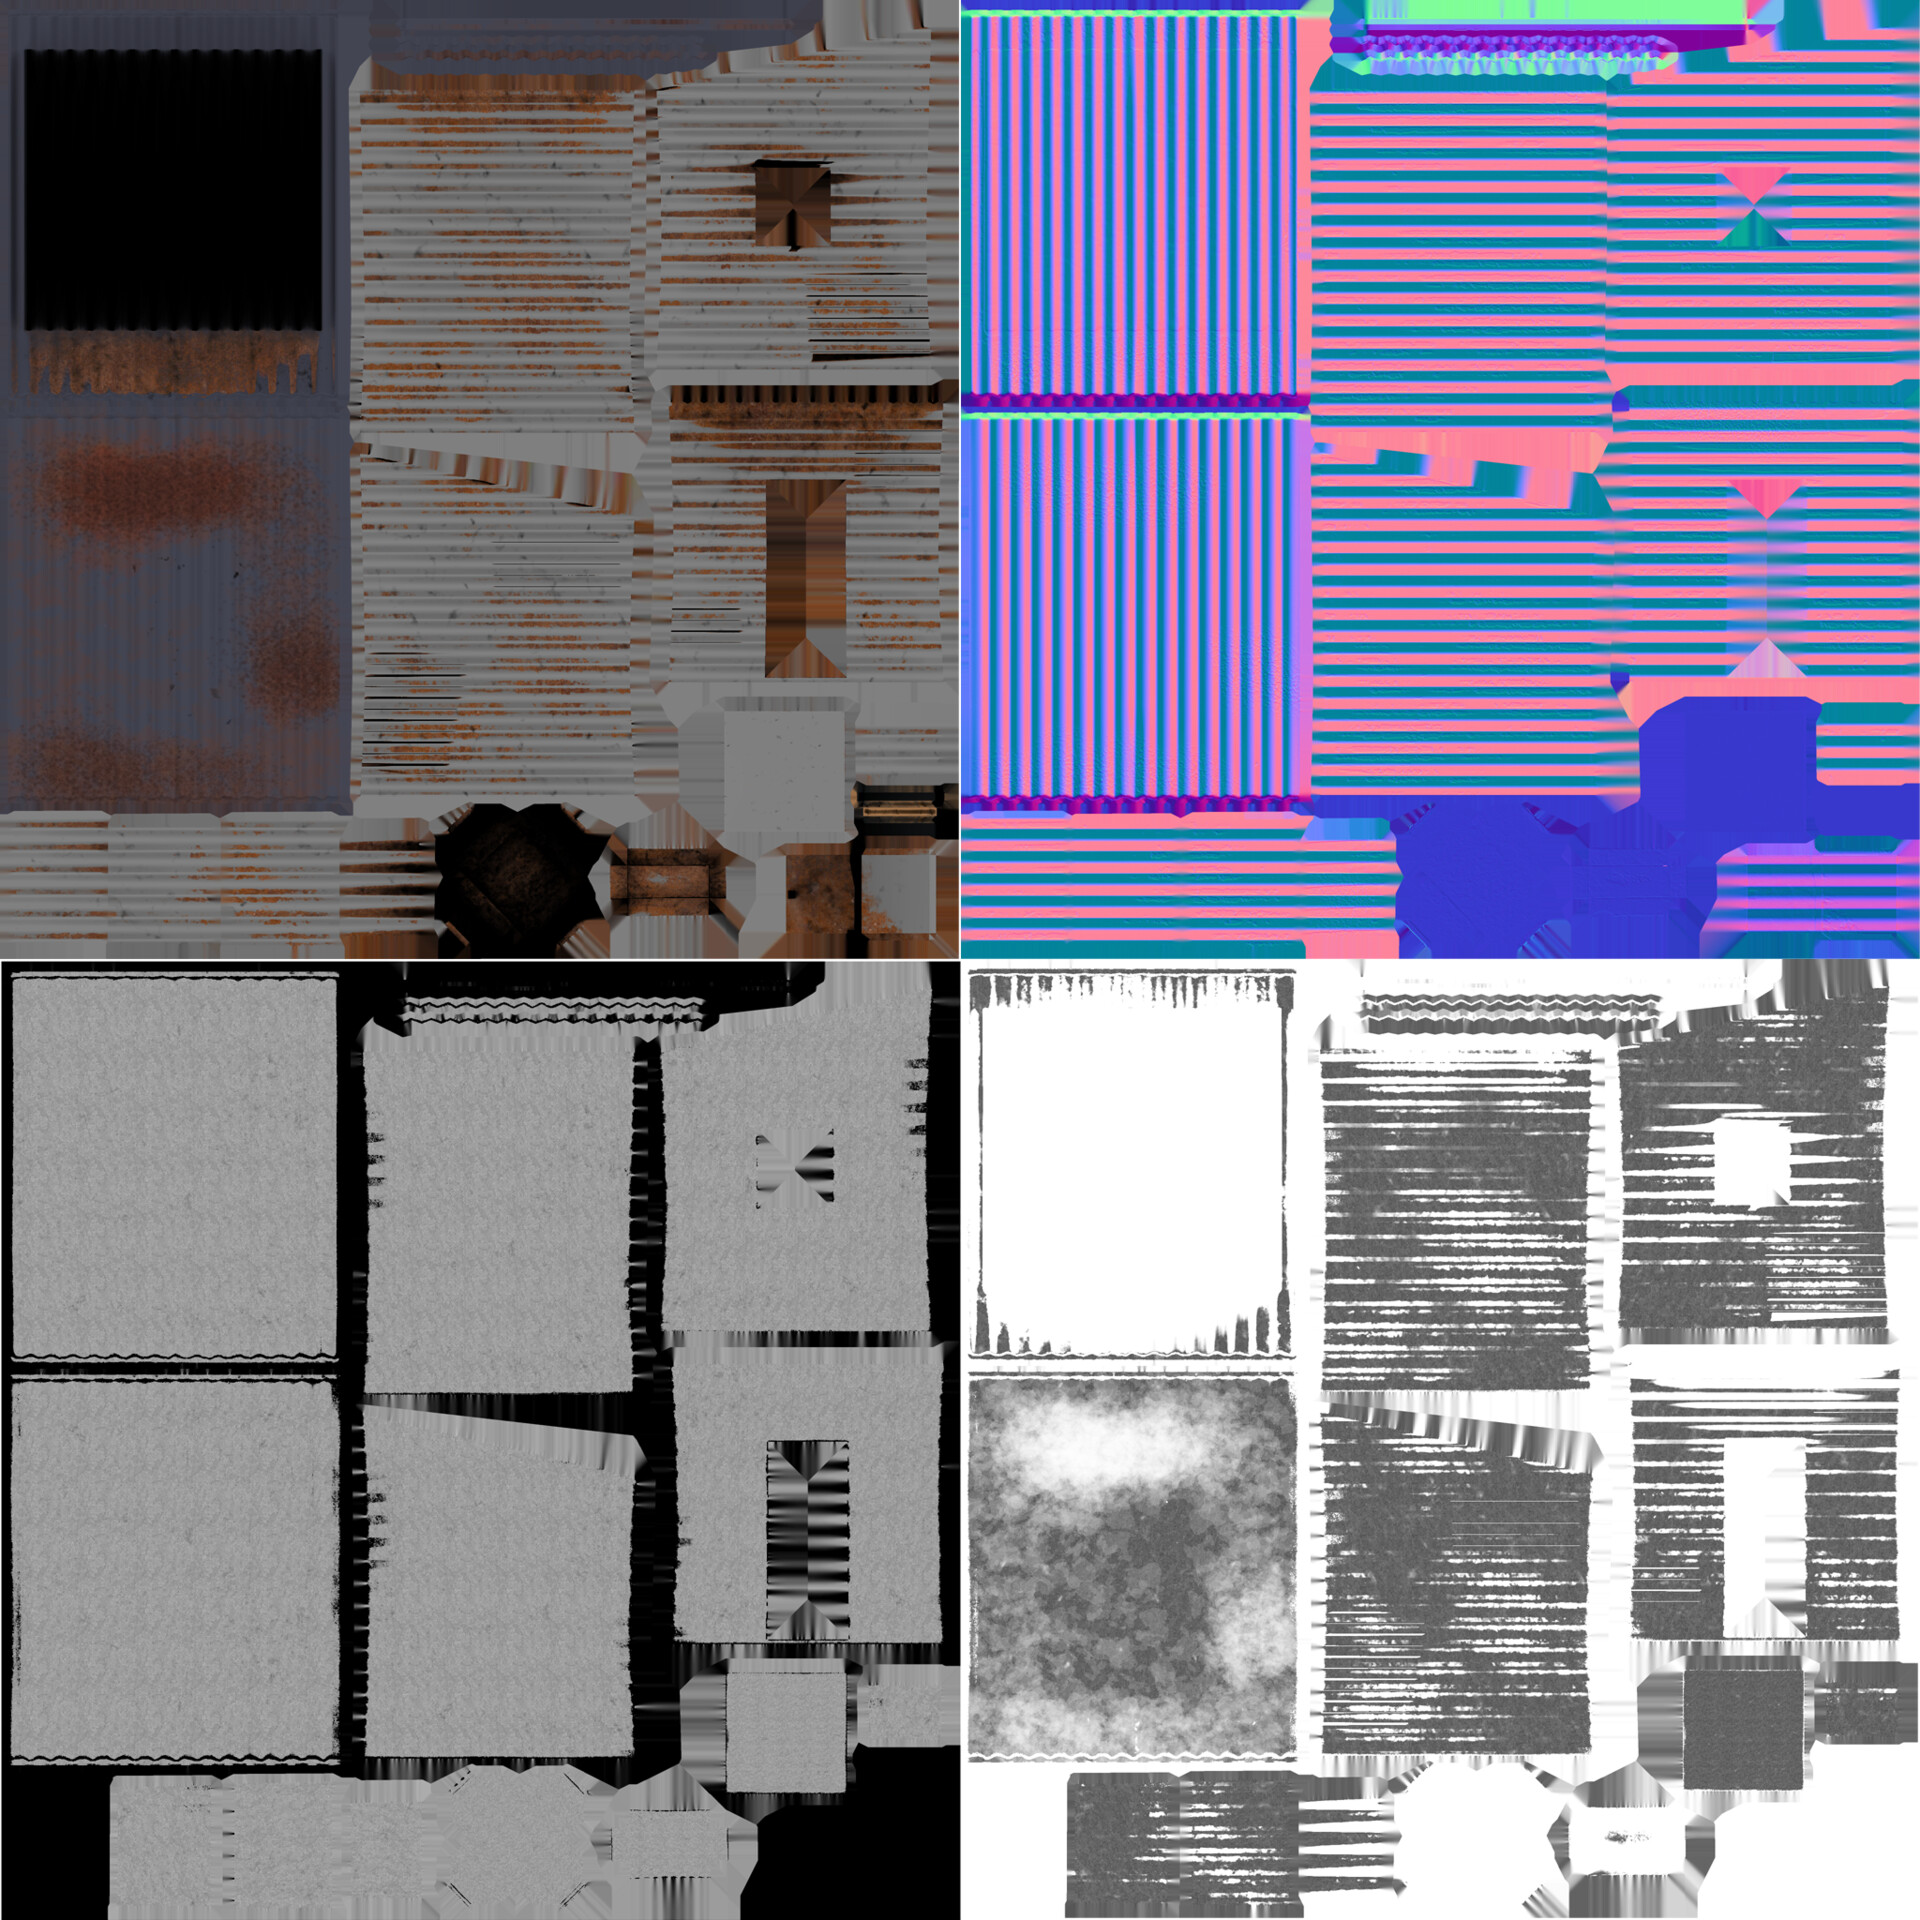 Shack albedo, normal, metal, and roughness maps (left to right)